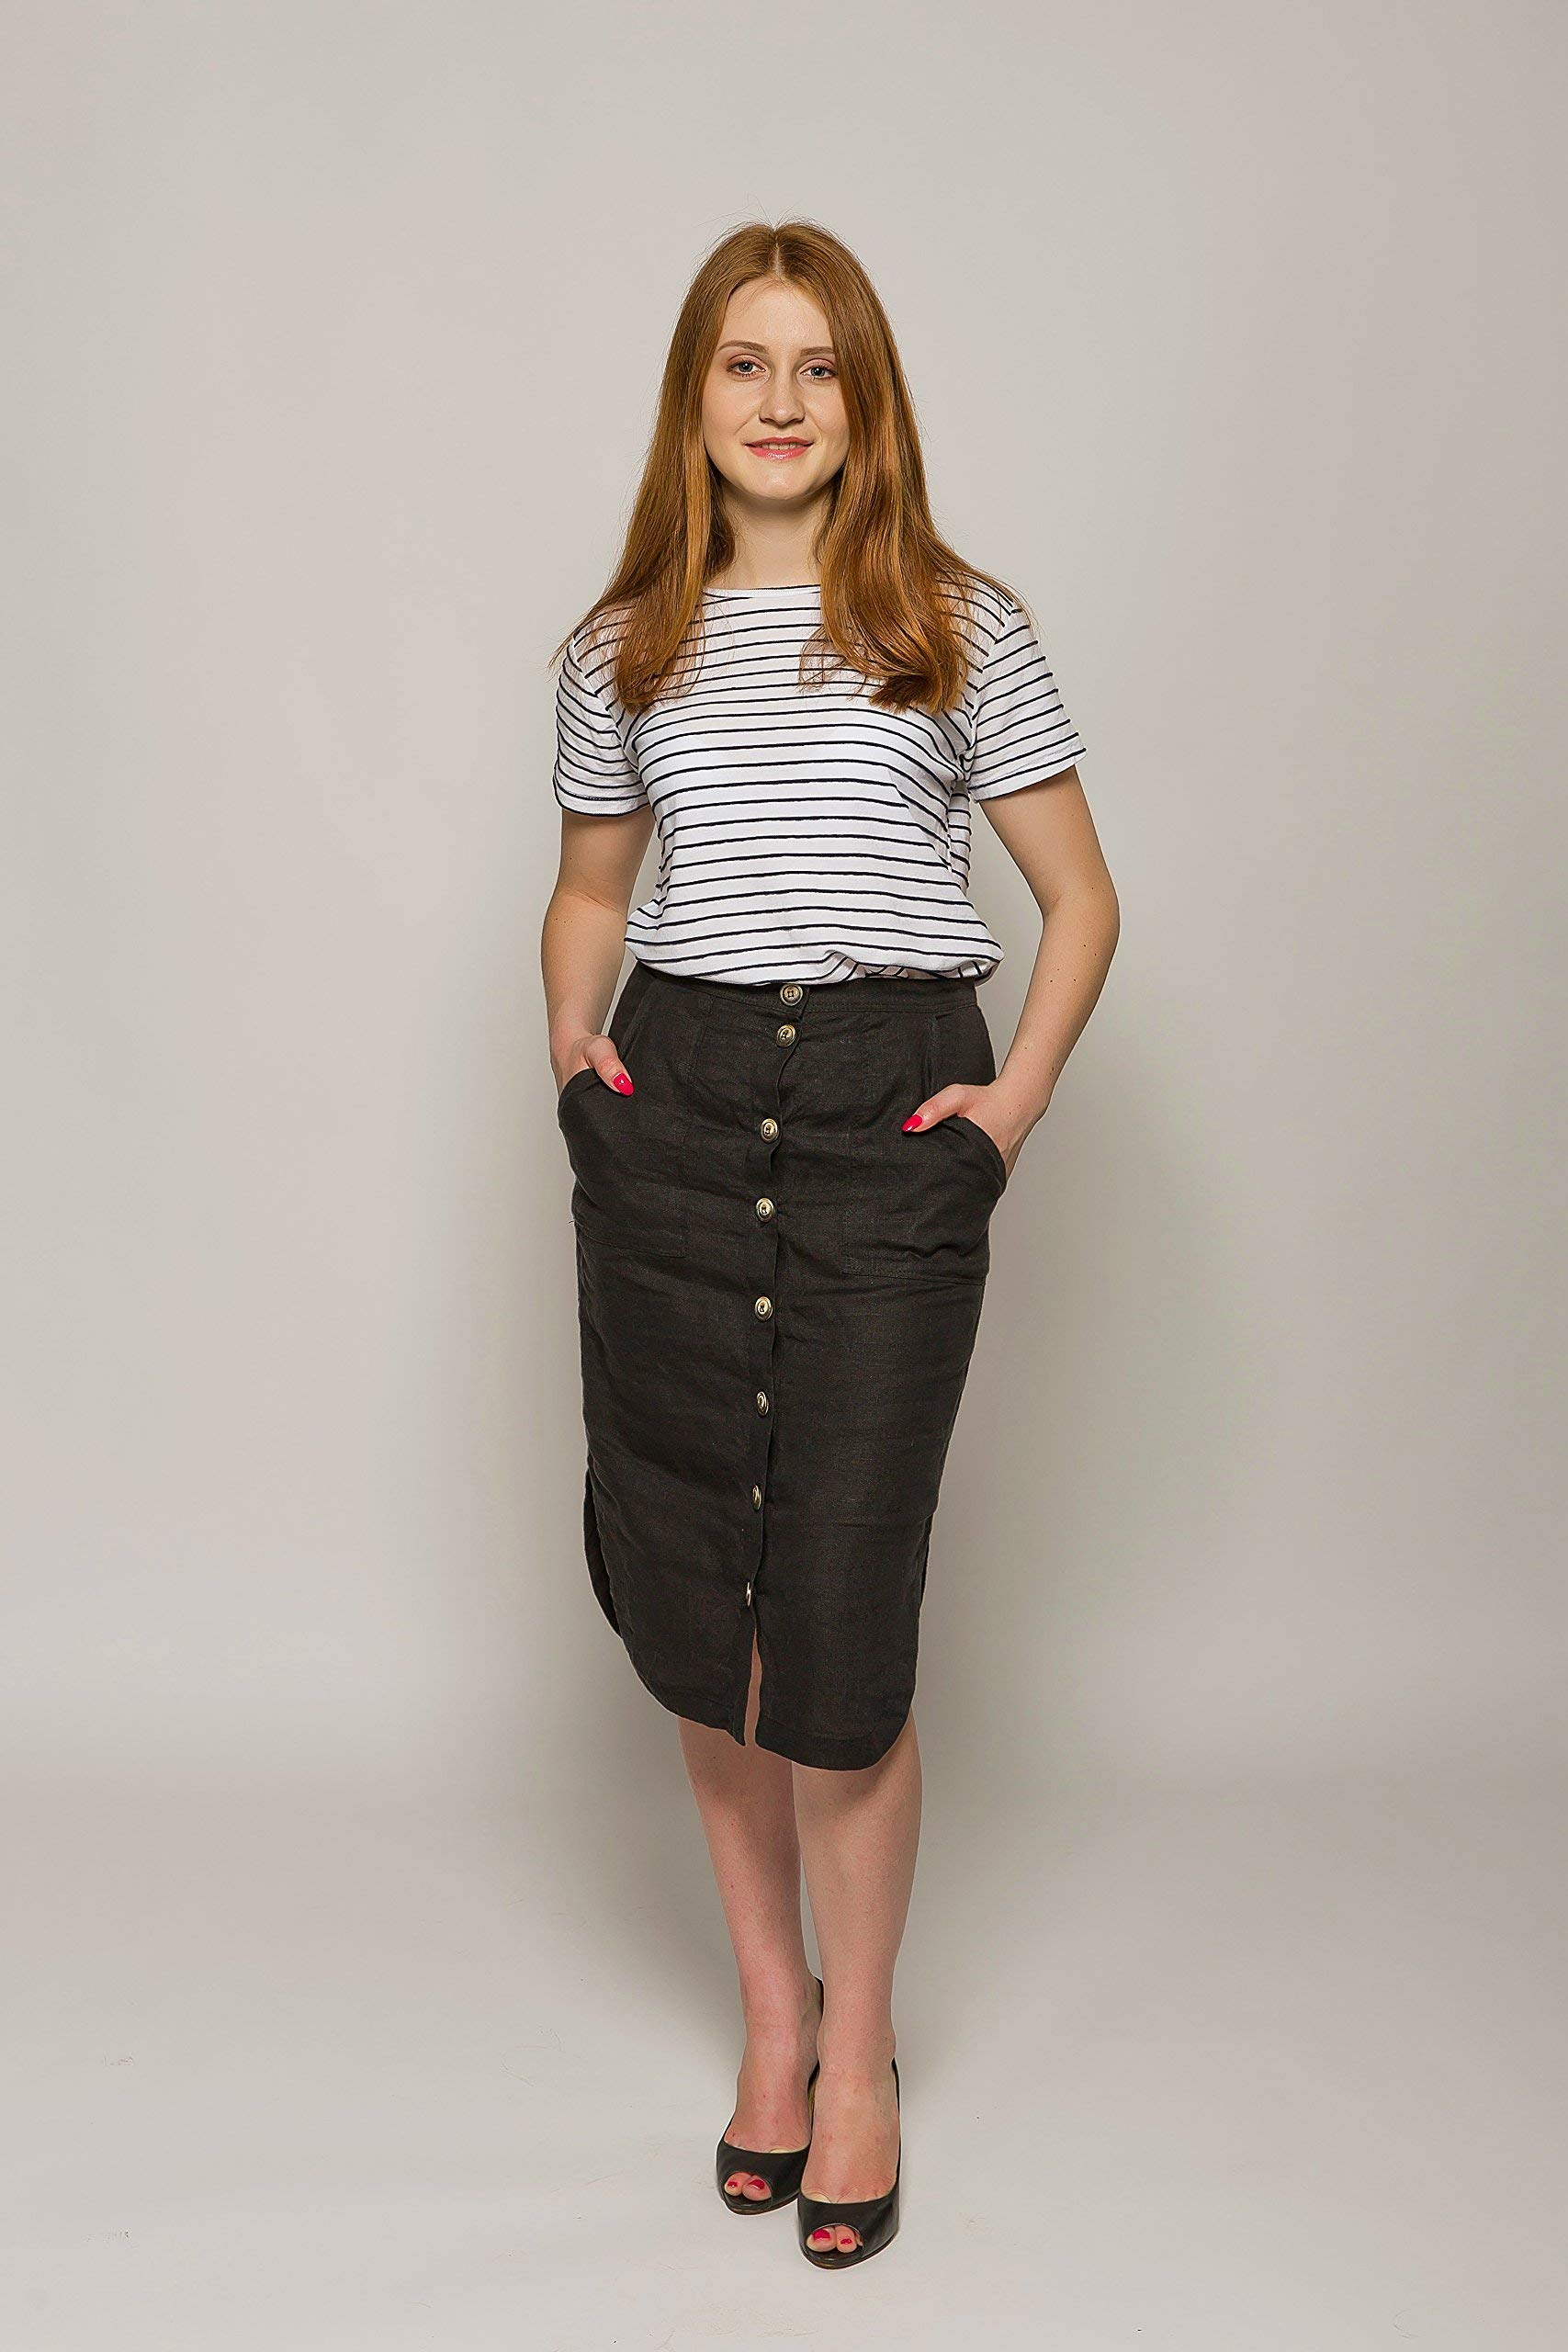 Linen Pencil Skirt with Buttons - Black Linen Midi Fashion Skirt - Different Sizes